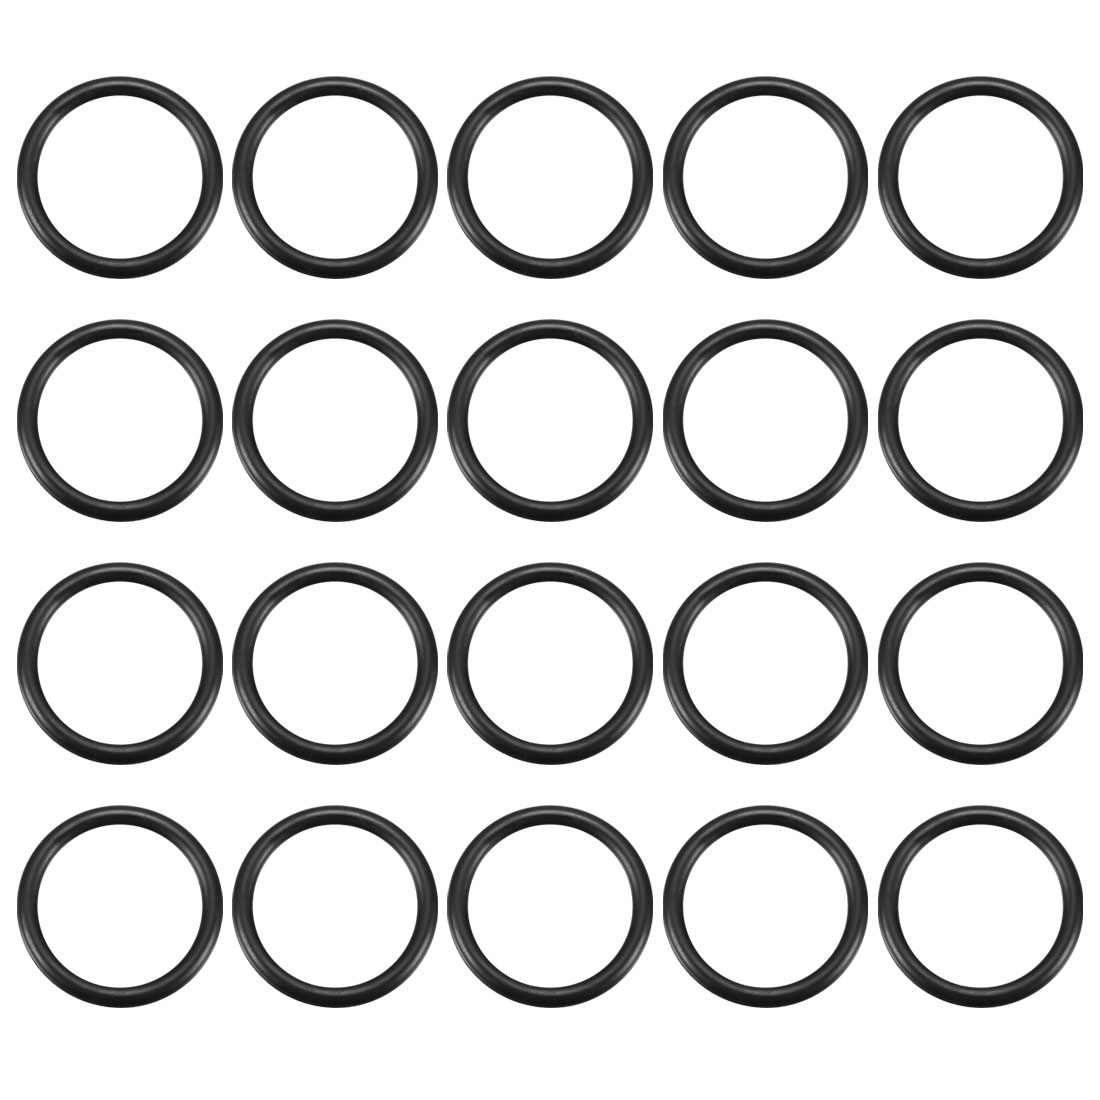 20 Pcs Rubber Gasket O Ring Seal Washers 38mm x 30mm x 4mm for PP-R Pipe Tube